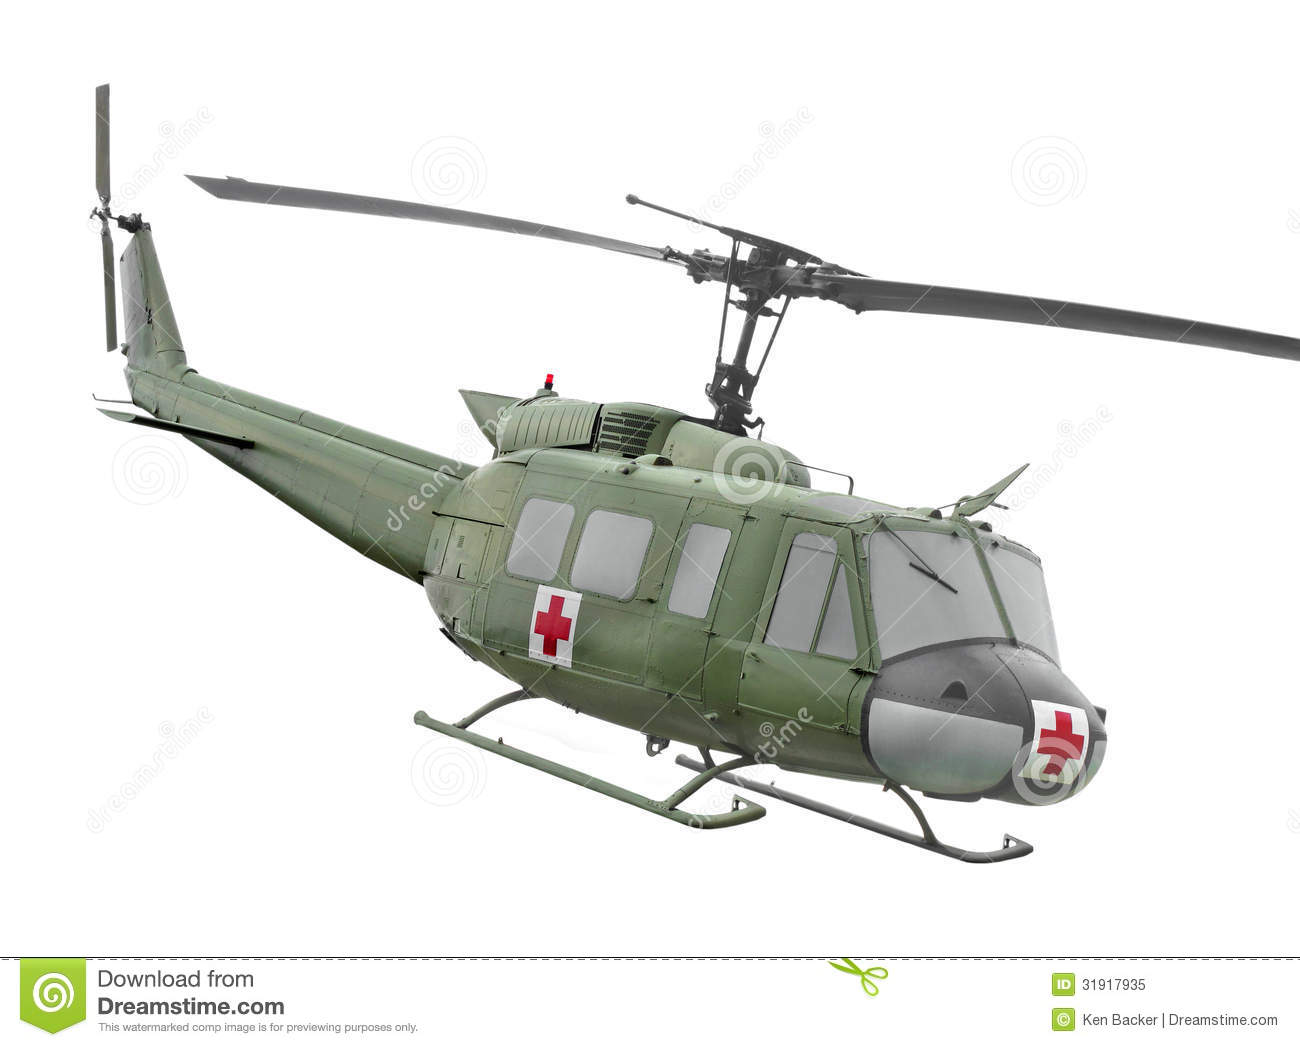 military medical helicopter with Royalty Free Stock Photo Vintage Military Helicopter Isolated Green Ambulance White Image31917935 on Ln01p additionally Eurocopter Ec 645 T2 Helicopter likewise Watch Iraqs Ec635 Helicopter Gunships Take On Isis Posi 1690652162 also Airport Scenario moreover Glass Monitor.